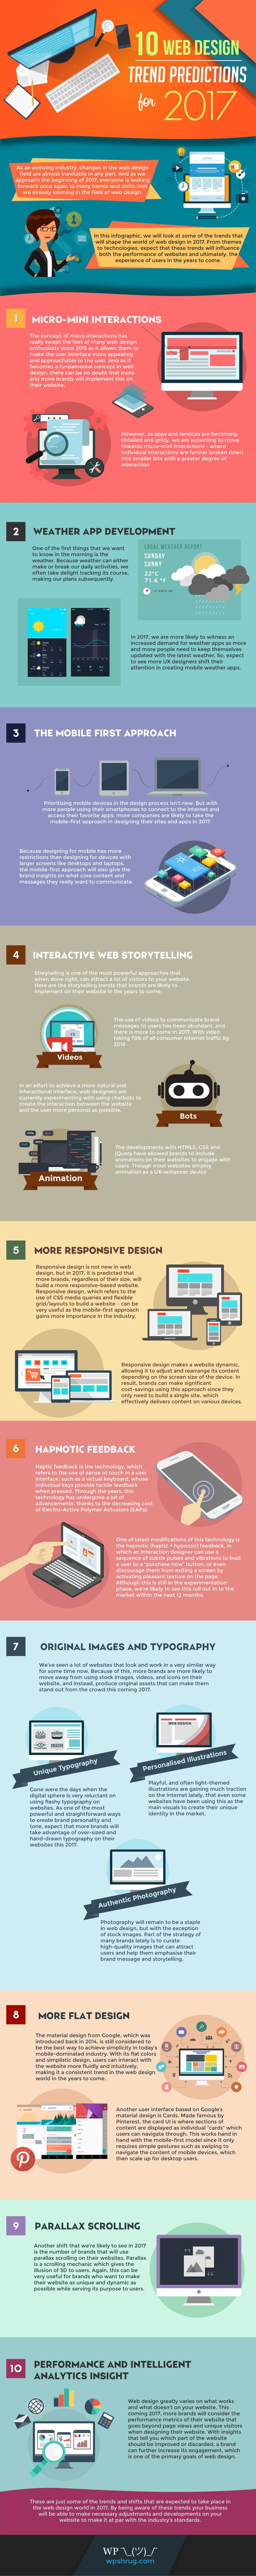 10 Web Design Trends & Predictions For 2017 #Infographic #WebDesign #Trends